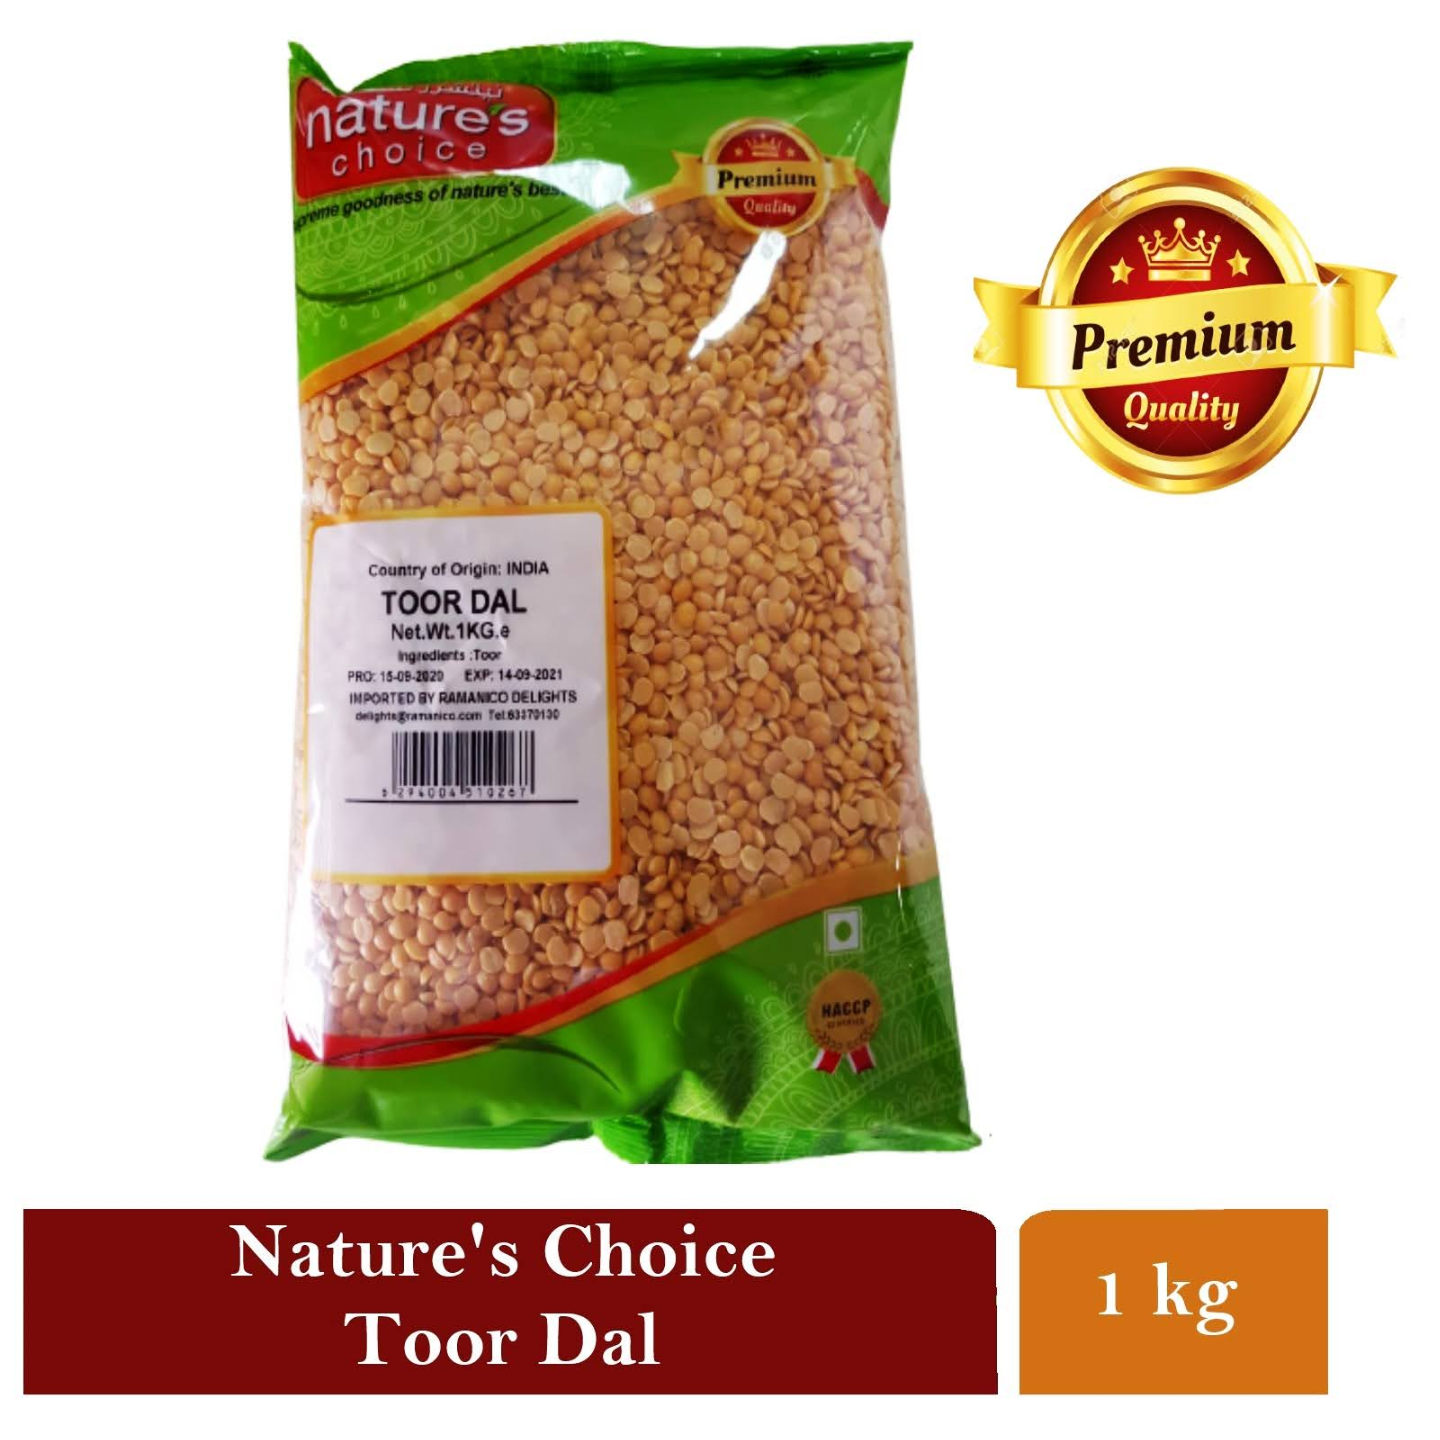 NATURES CHOICE PREMIUM QUALITY TOOR DAL 1 KG